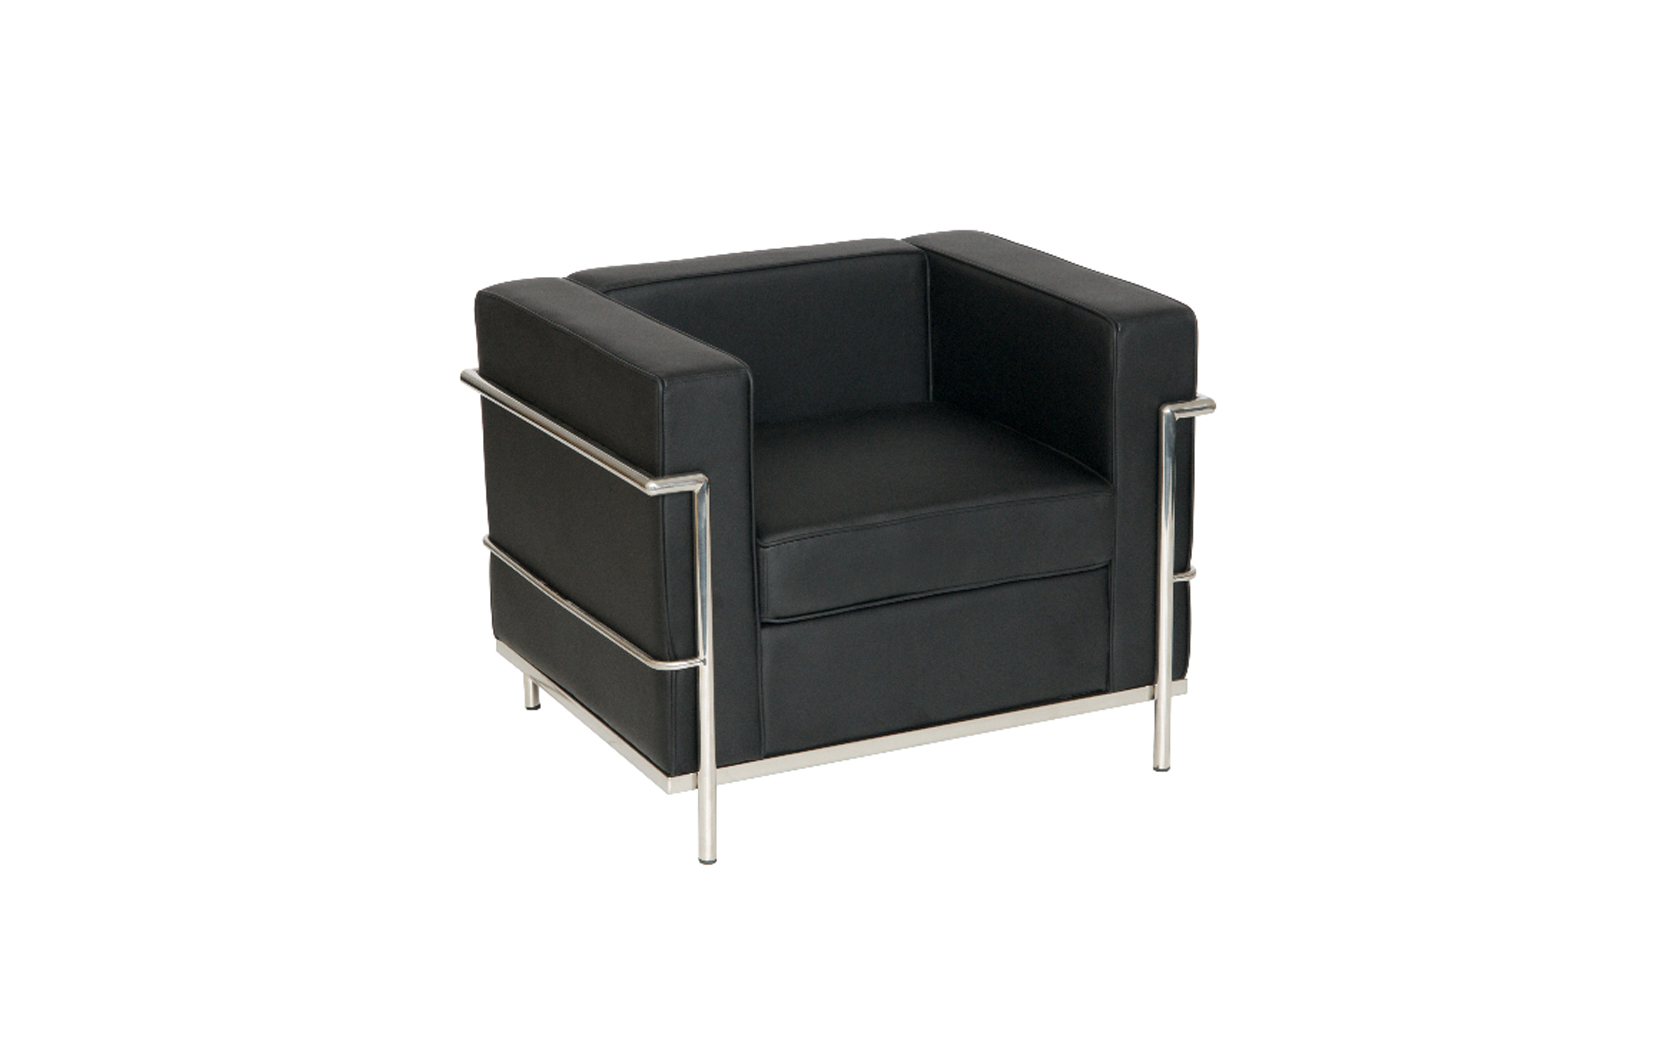 Leather reception chairs for home office - Le Corbusier Style Armchair Sj009 1 Somercotes Office